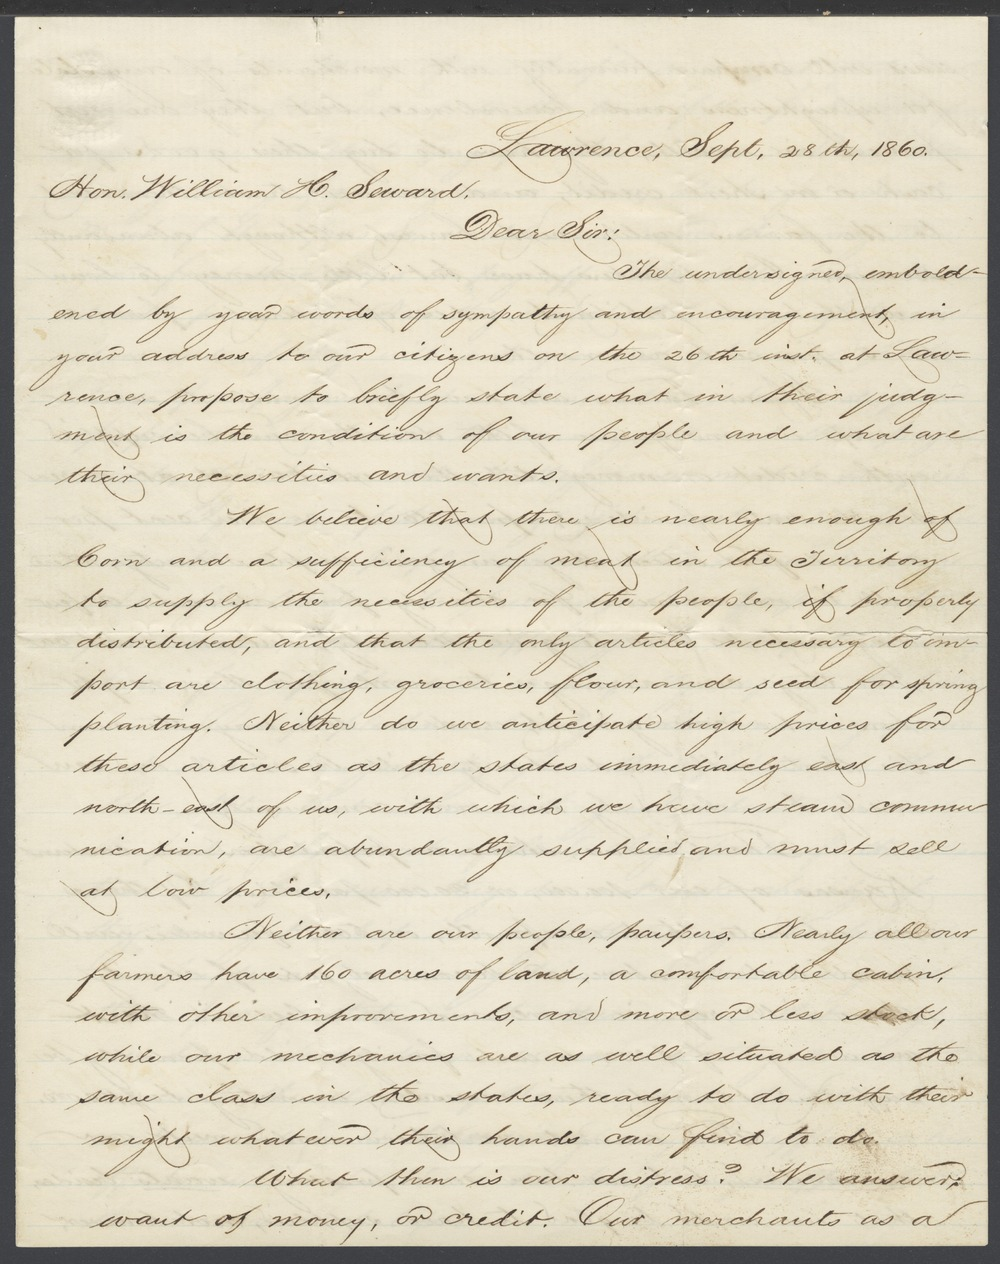 Charles Robinson and James M. Winchell to William H. Seward - 1